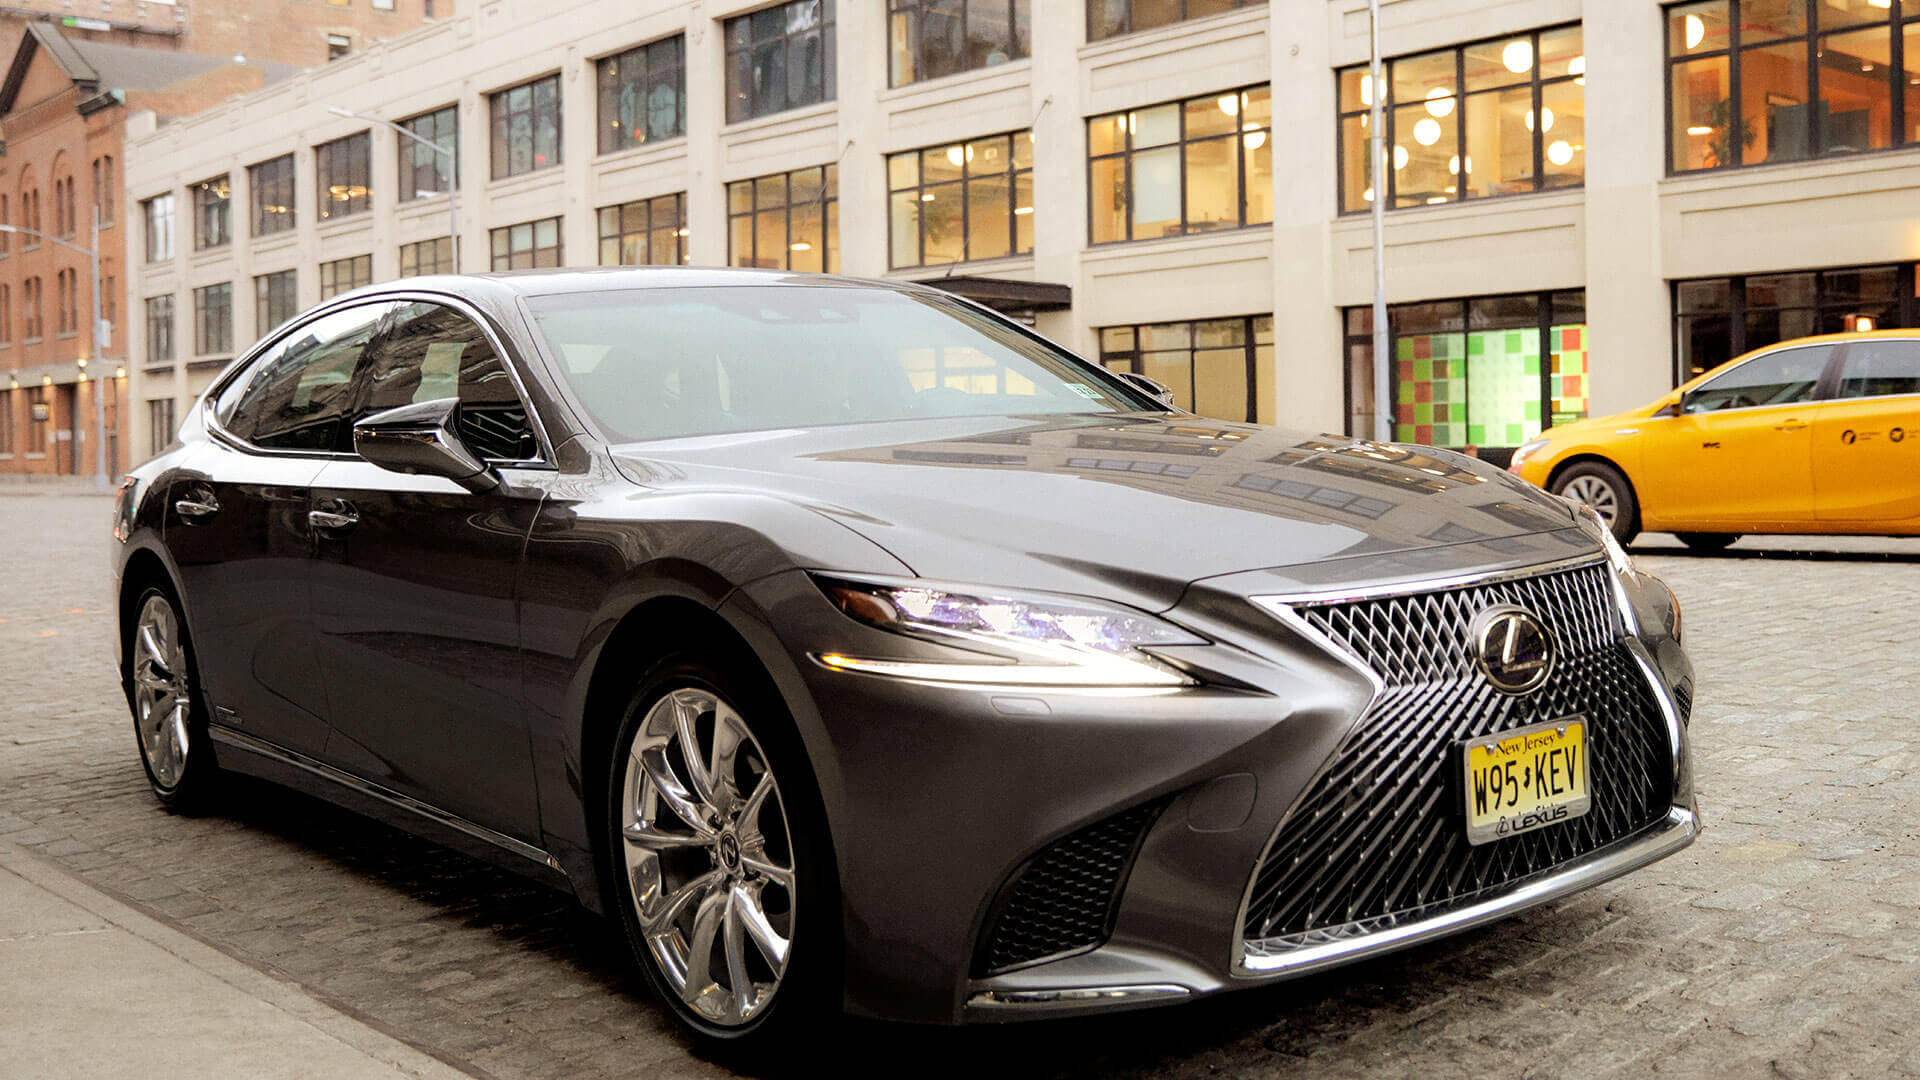 2019 lexus jit episode 4 ls gallery 03